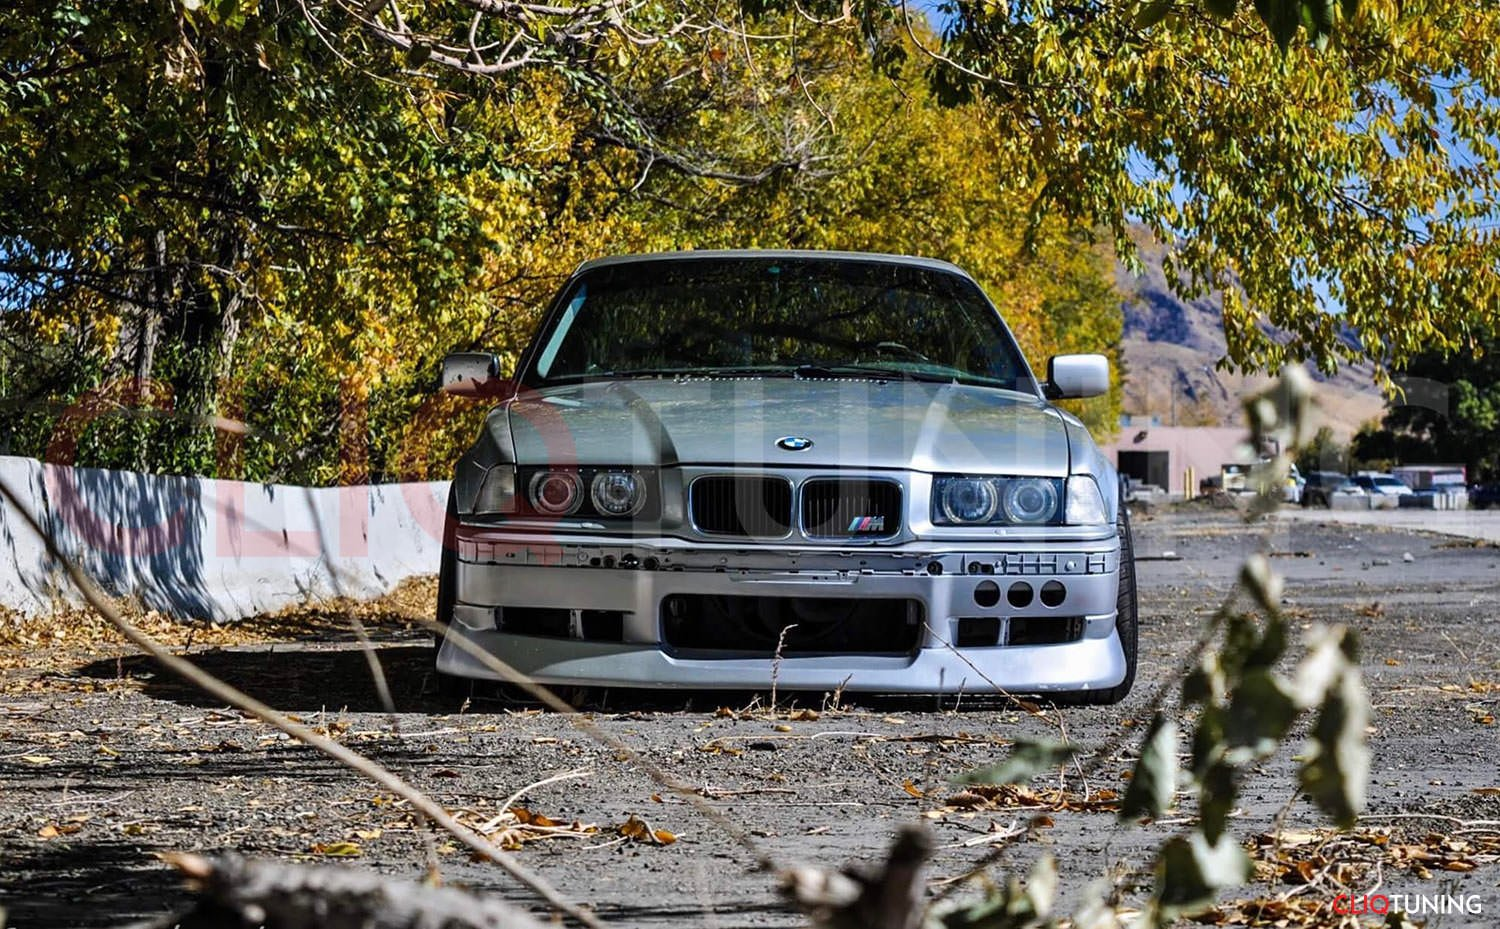 hight resolution of bmw e36 coupe aero kit front lip jap bn style bumper lips and side skirts for